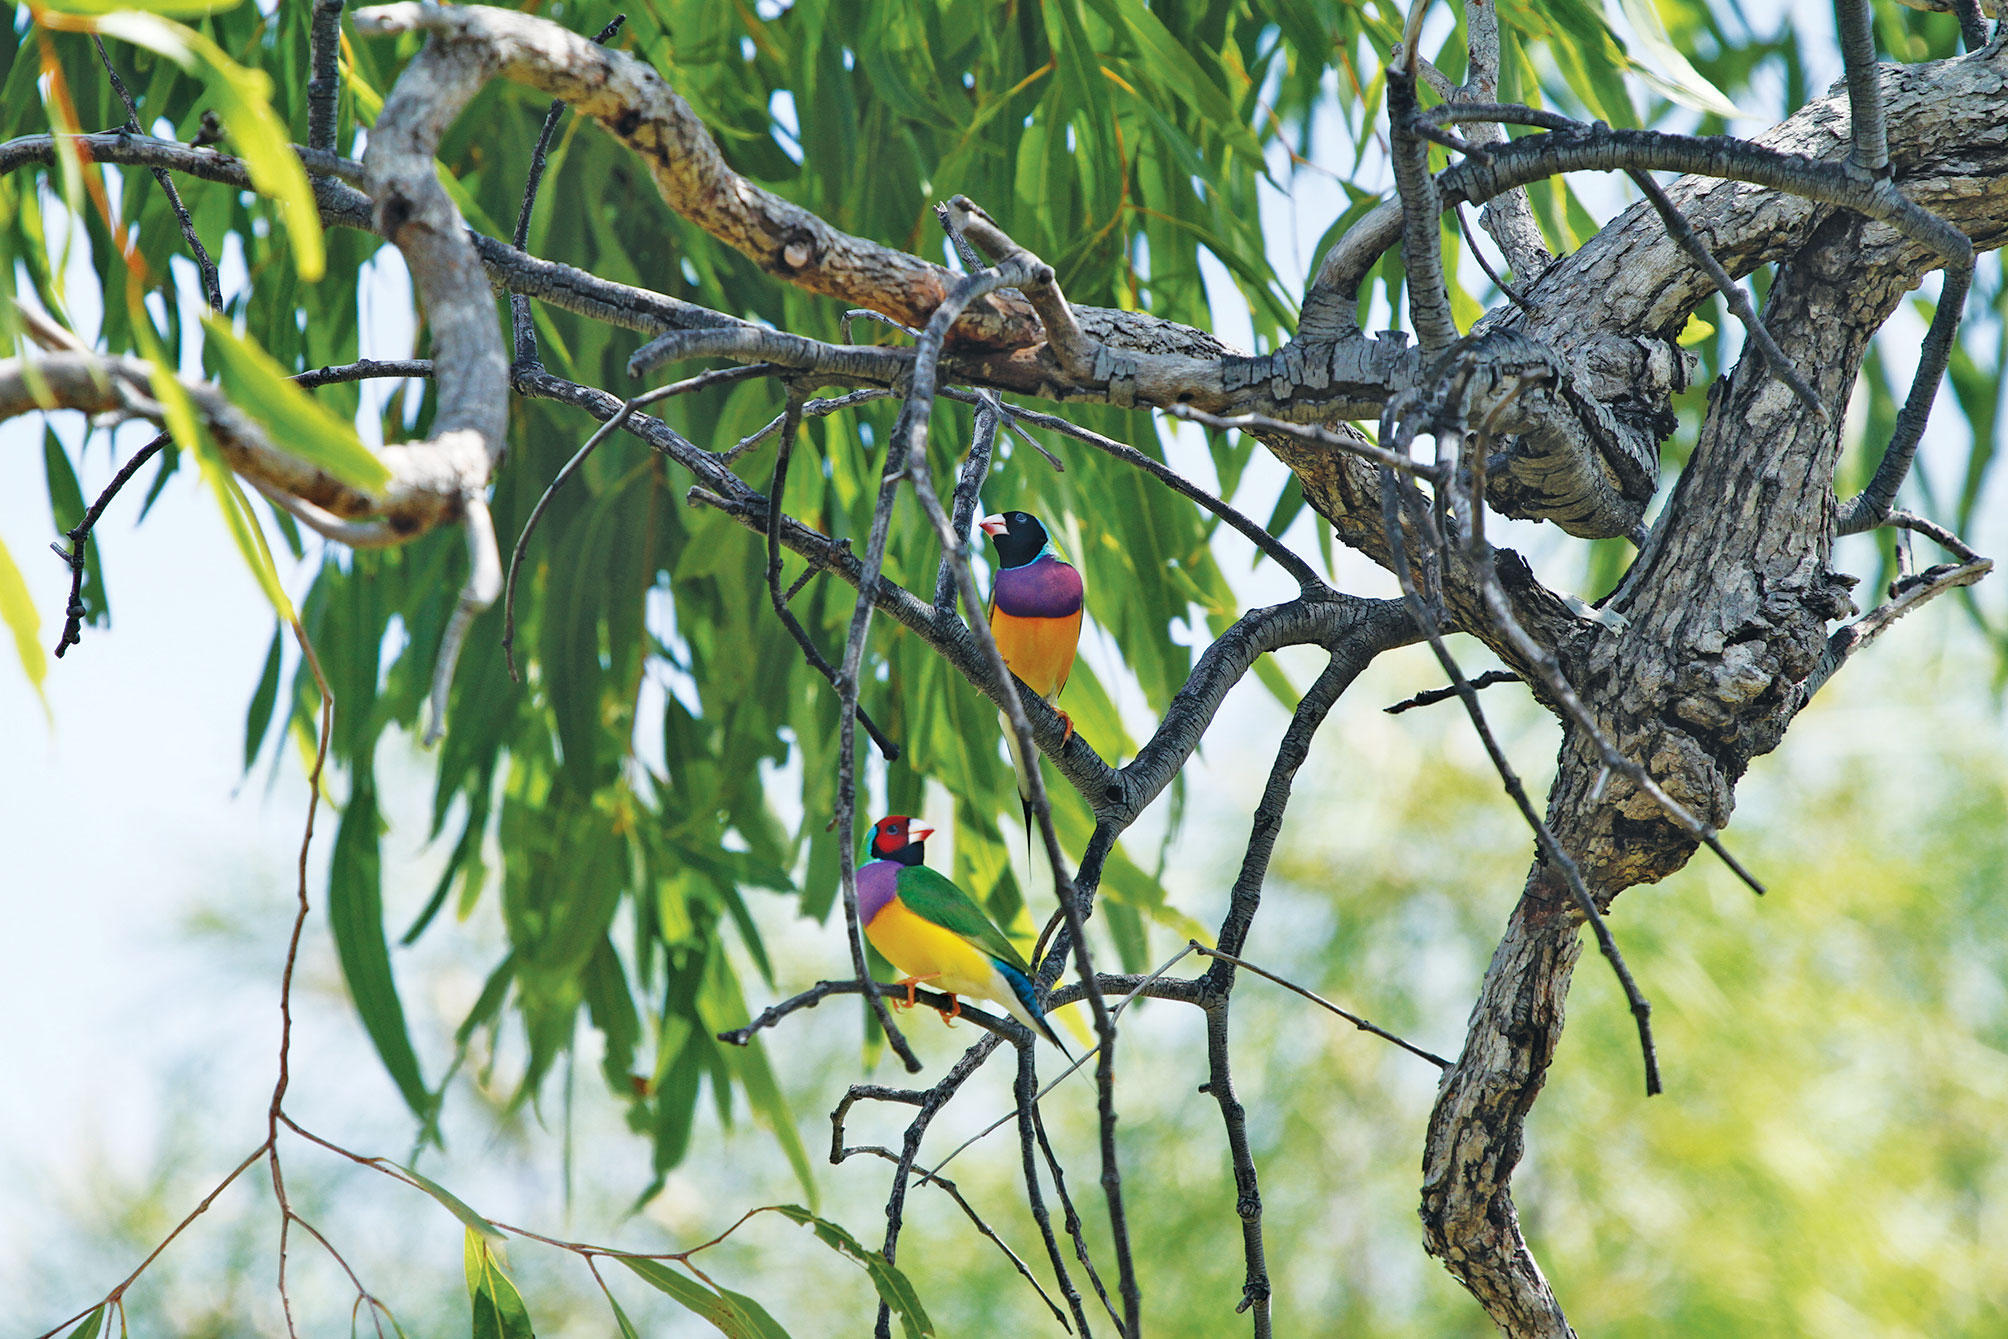 How Australia S Aborigines Are Using Fire To Save The Dazzling Gouldian Finch Audubon